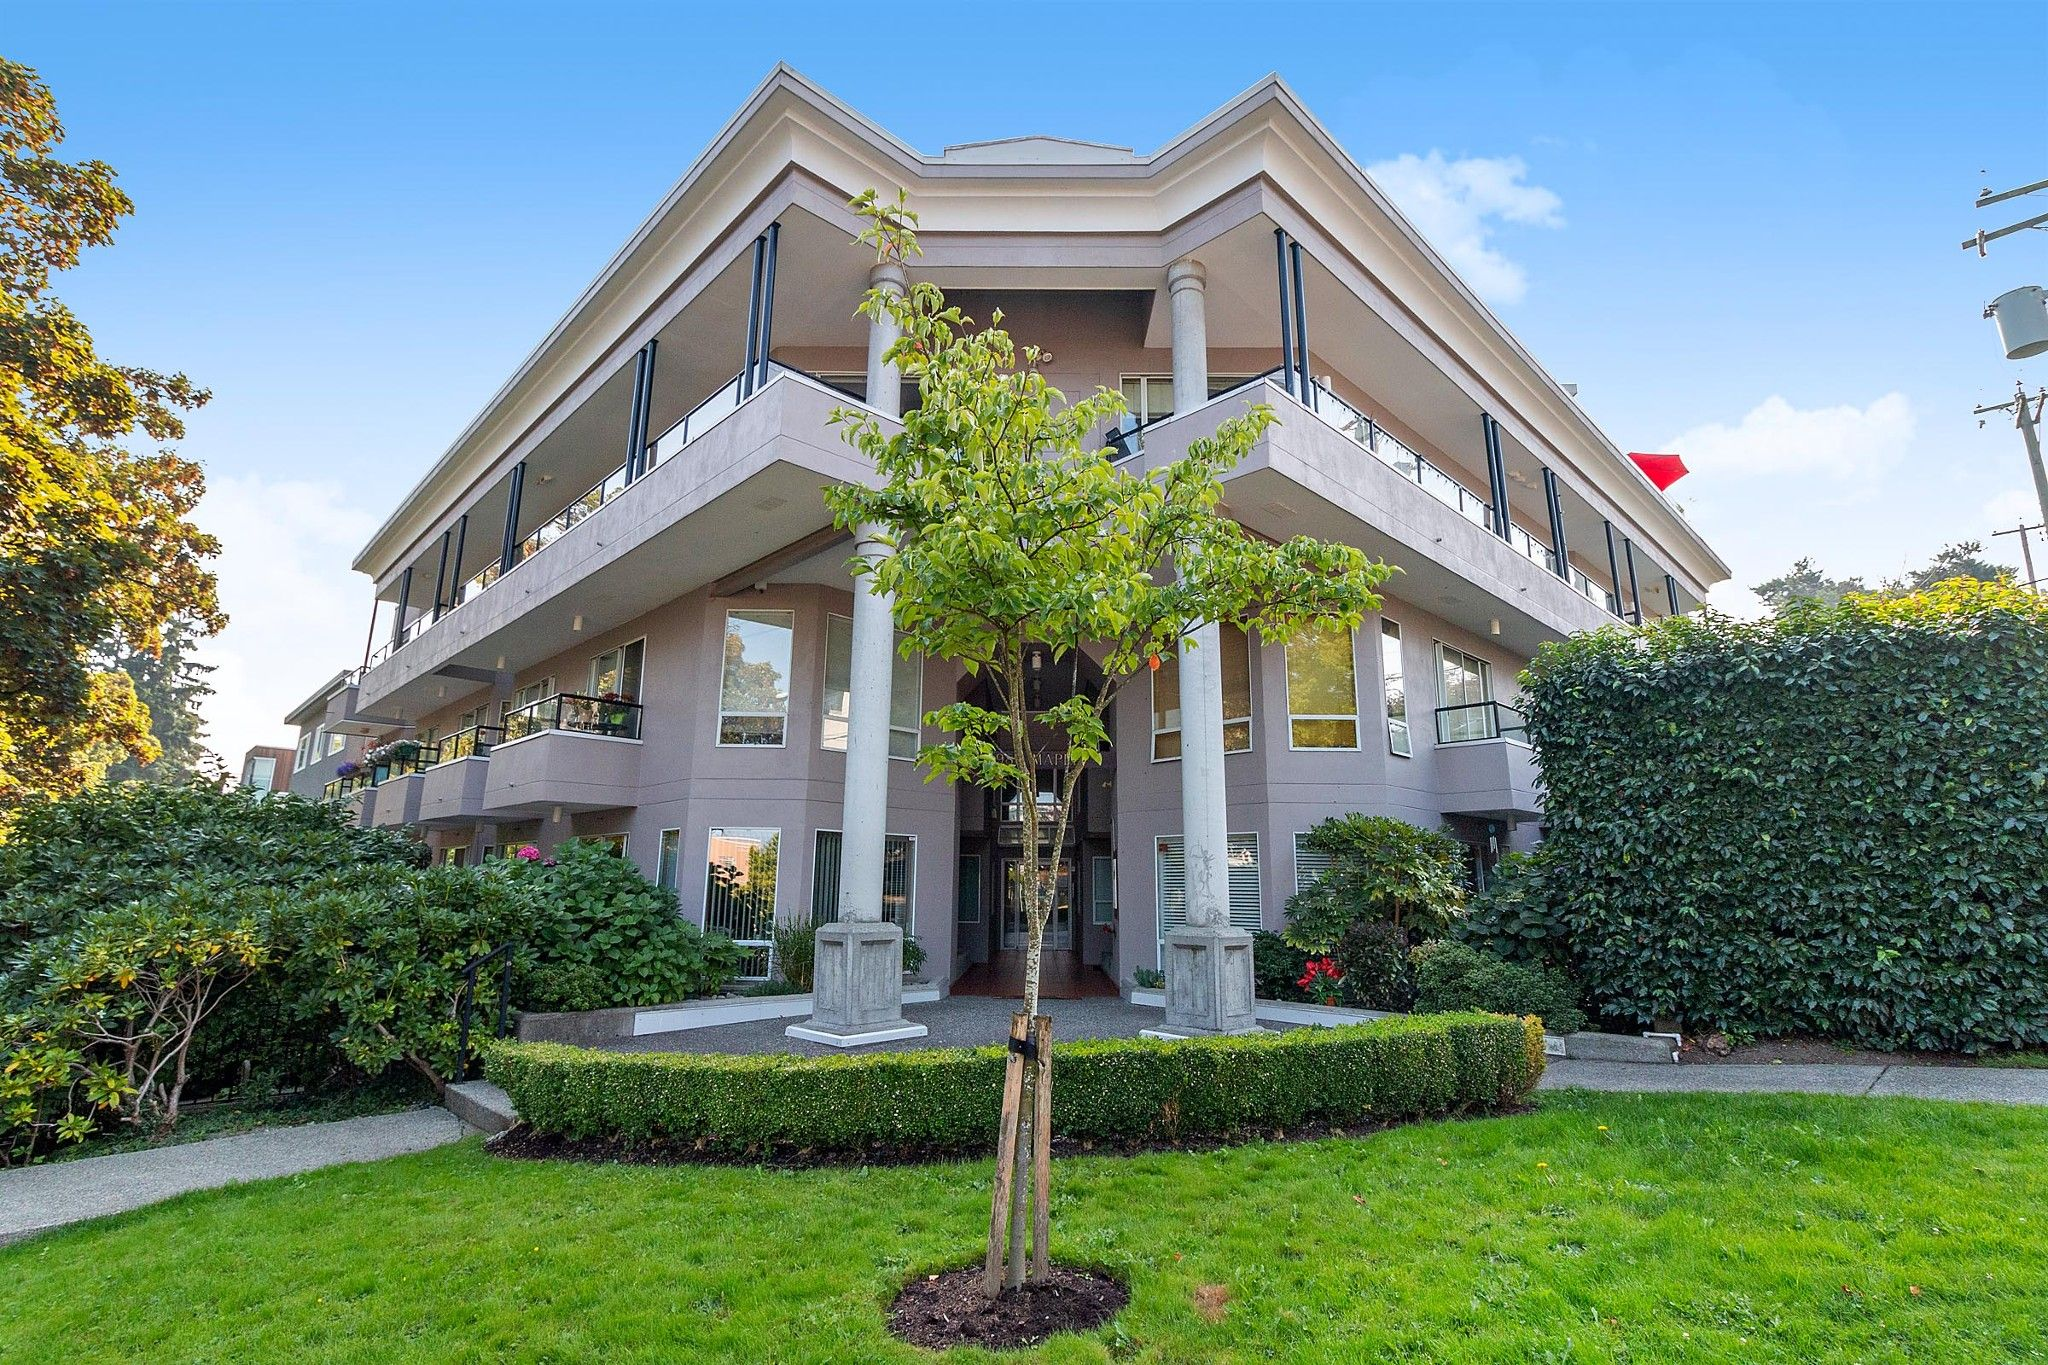 """Main Photo: 311 1988 MAPLE Street in Vancouver: Kitsilano Condo for sale in """"THE MAPLES"""" (Vancouver West)  : MLS®# R2497159"""